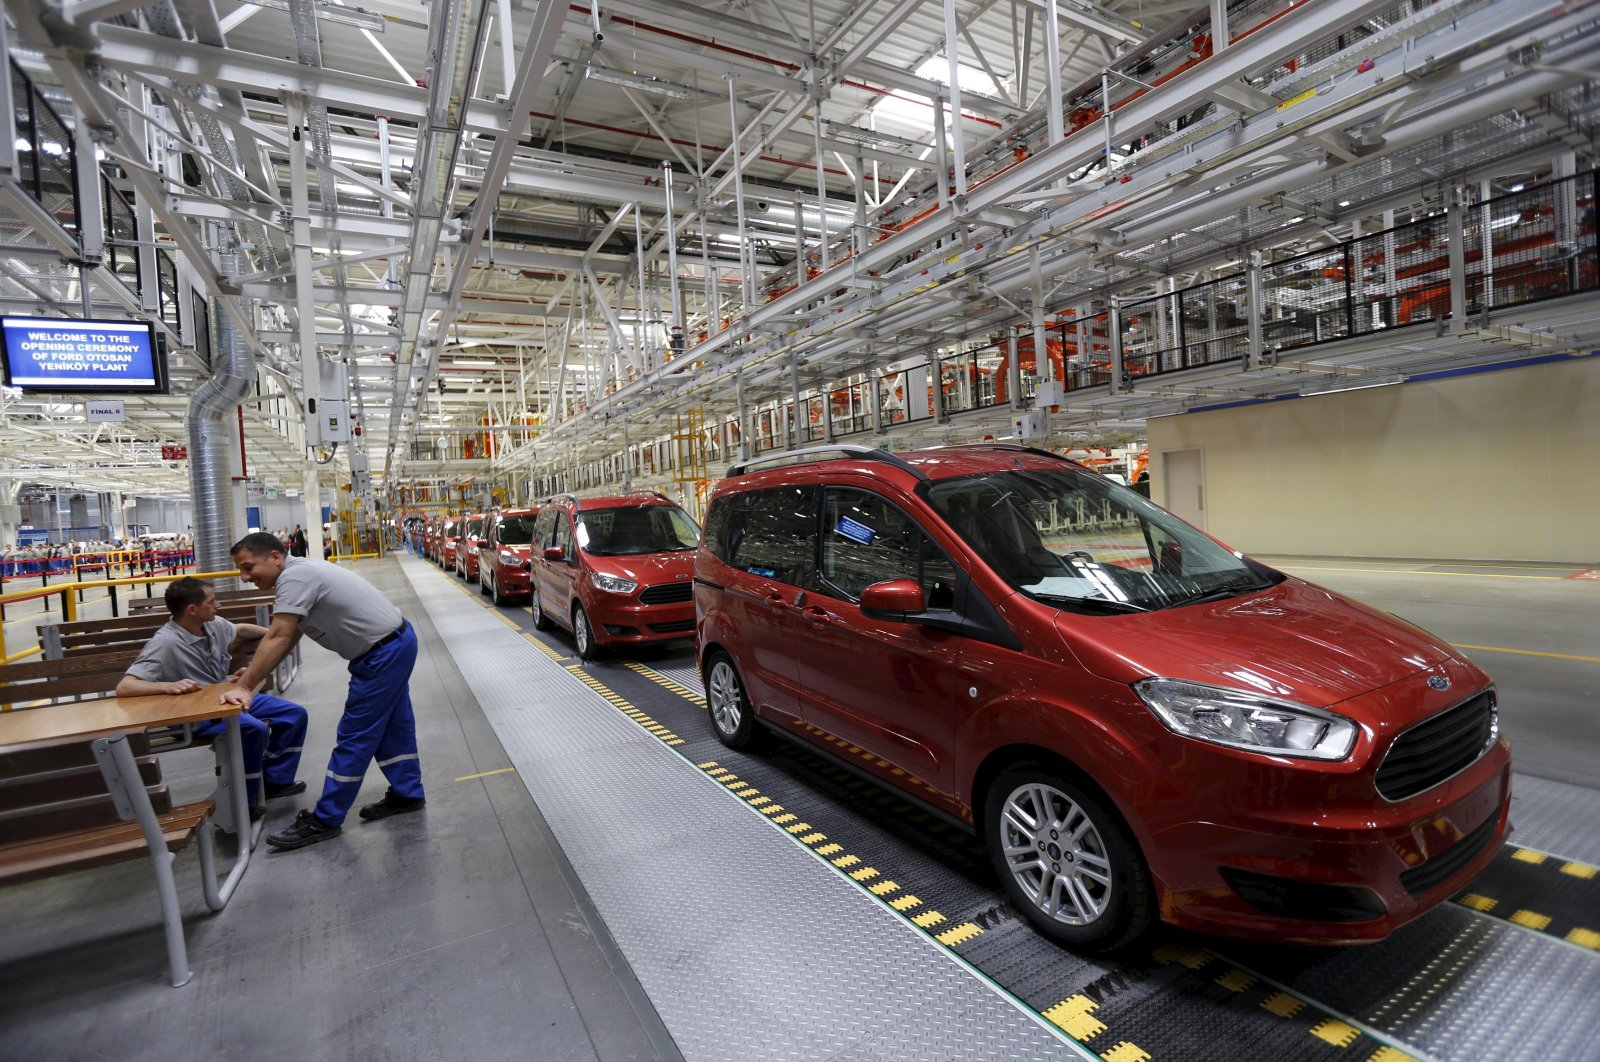 Ford Tourneo Courier light commercial vehicles are pictured at the Ford Otosan Yeniköy car plant in Kocaeli, northwestern Turkey, May 22, 2014.